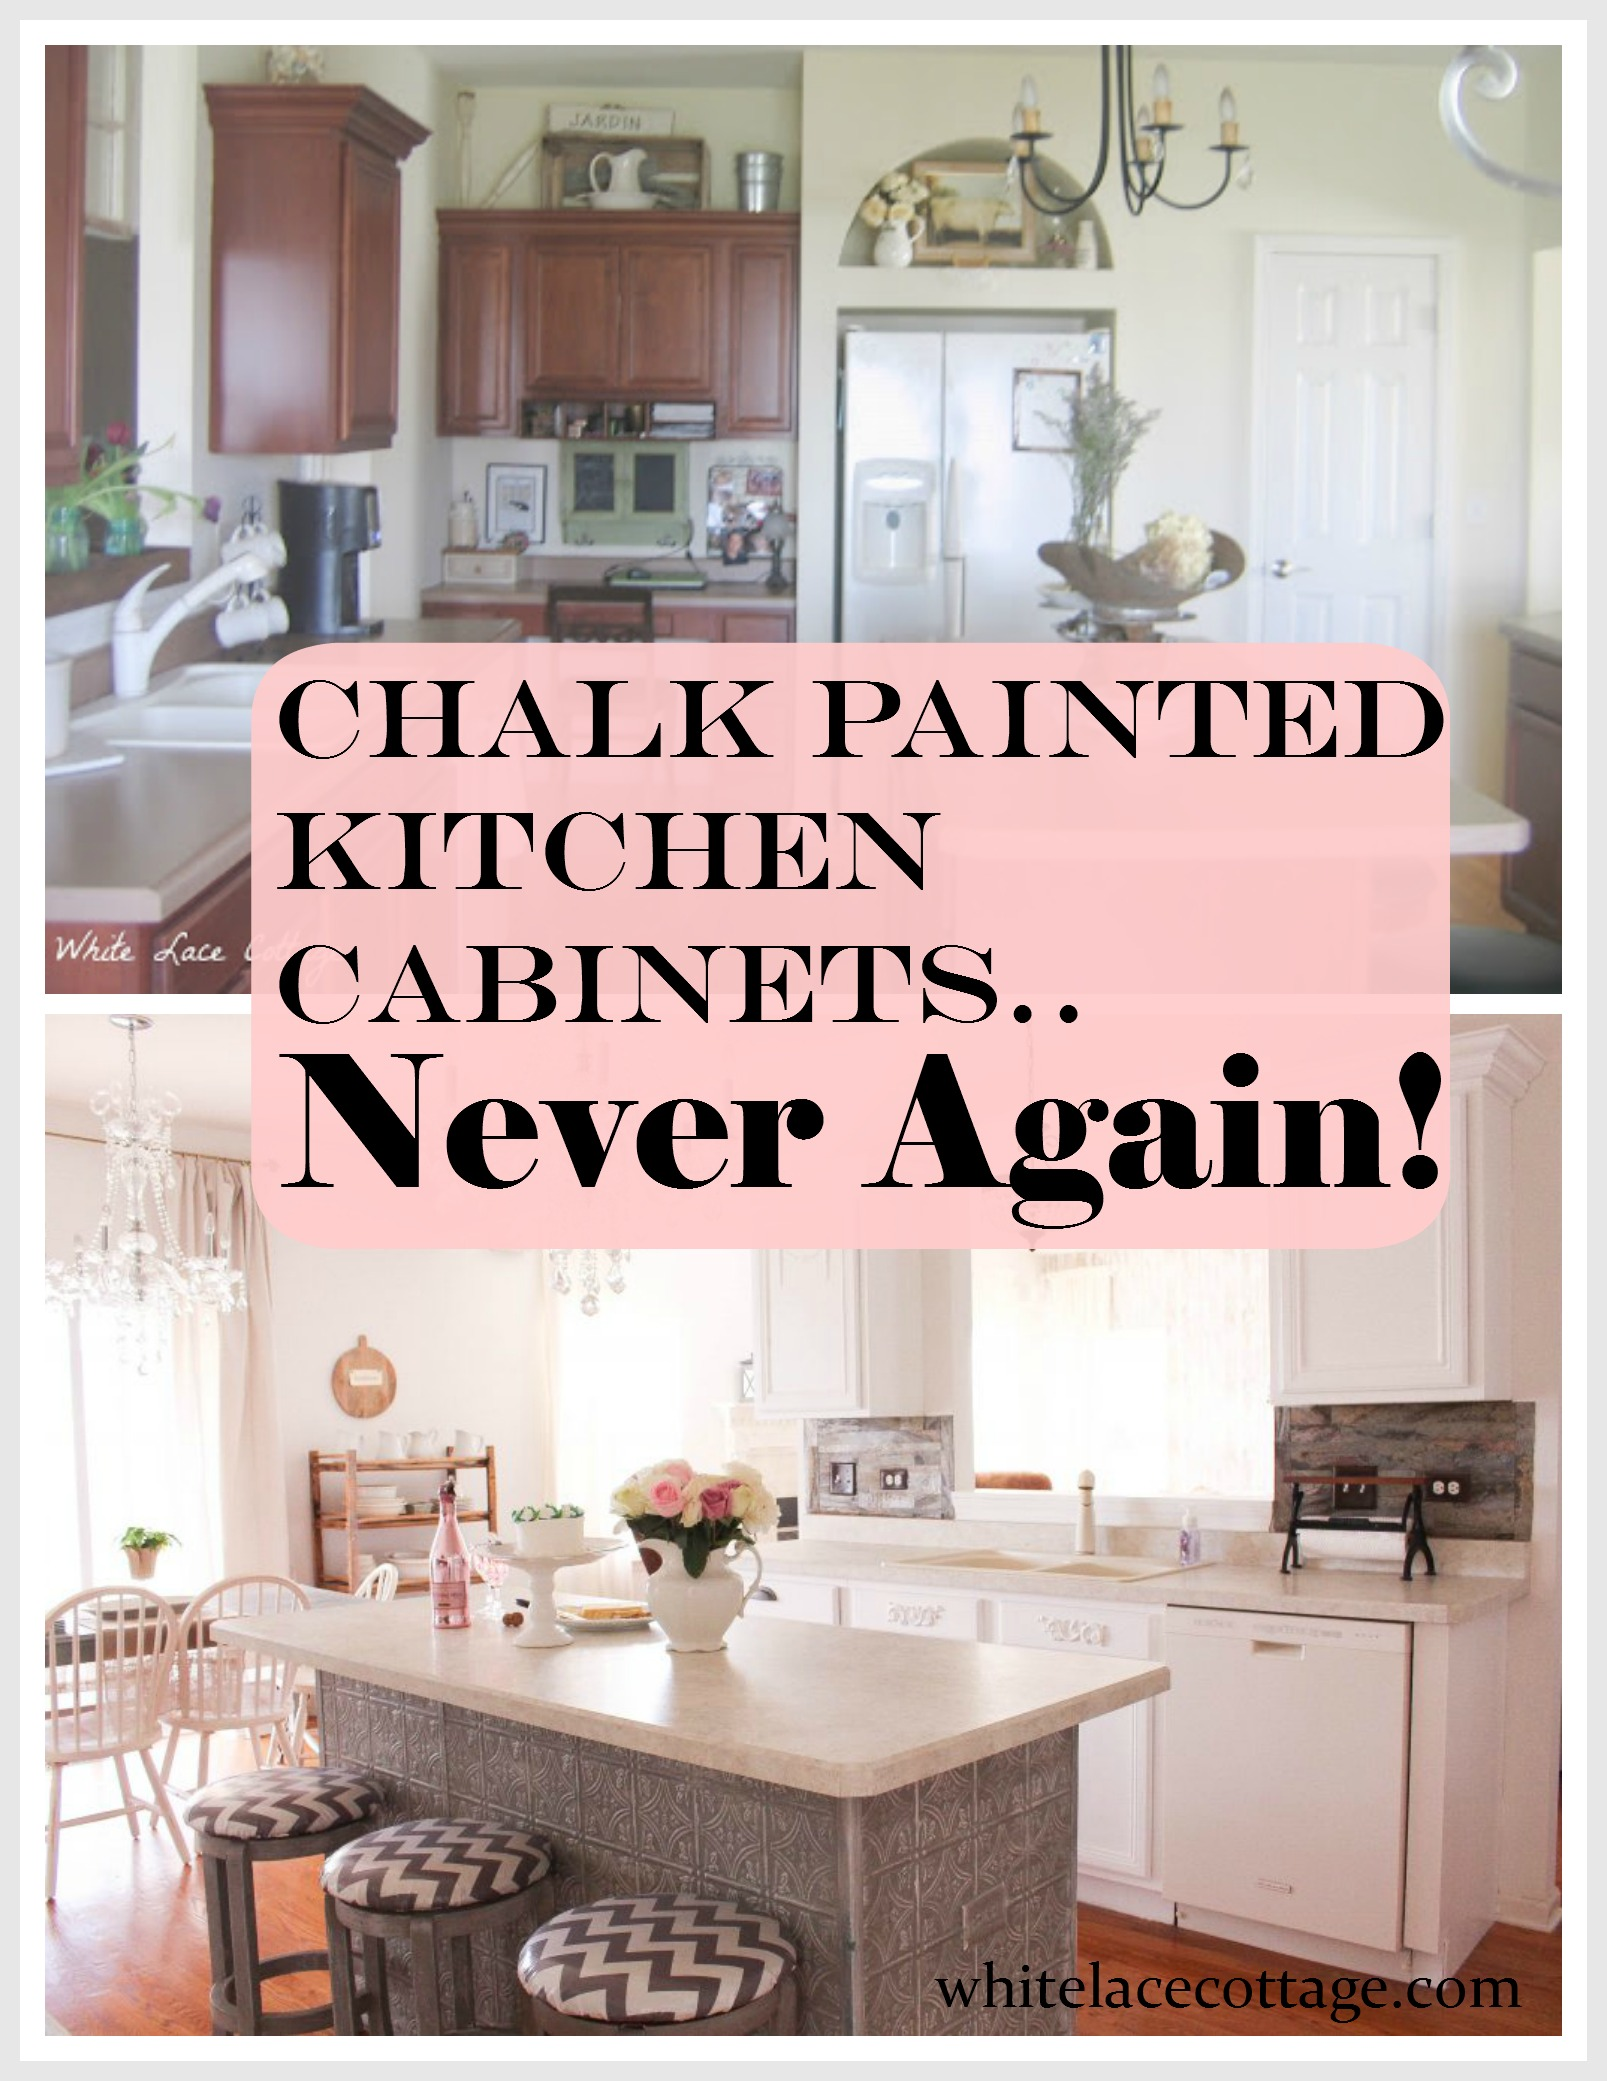 Cupboards Kitchen Chalk Painted Kitchen Cabinets Never Again White Lace Cottage